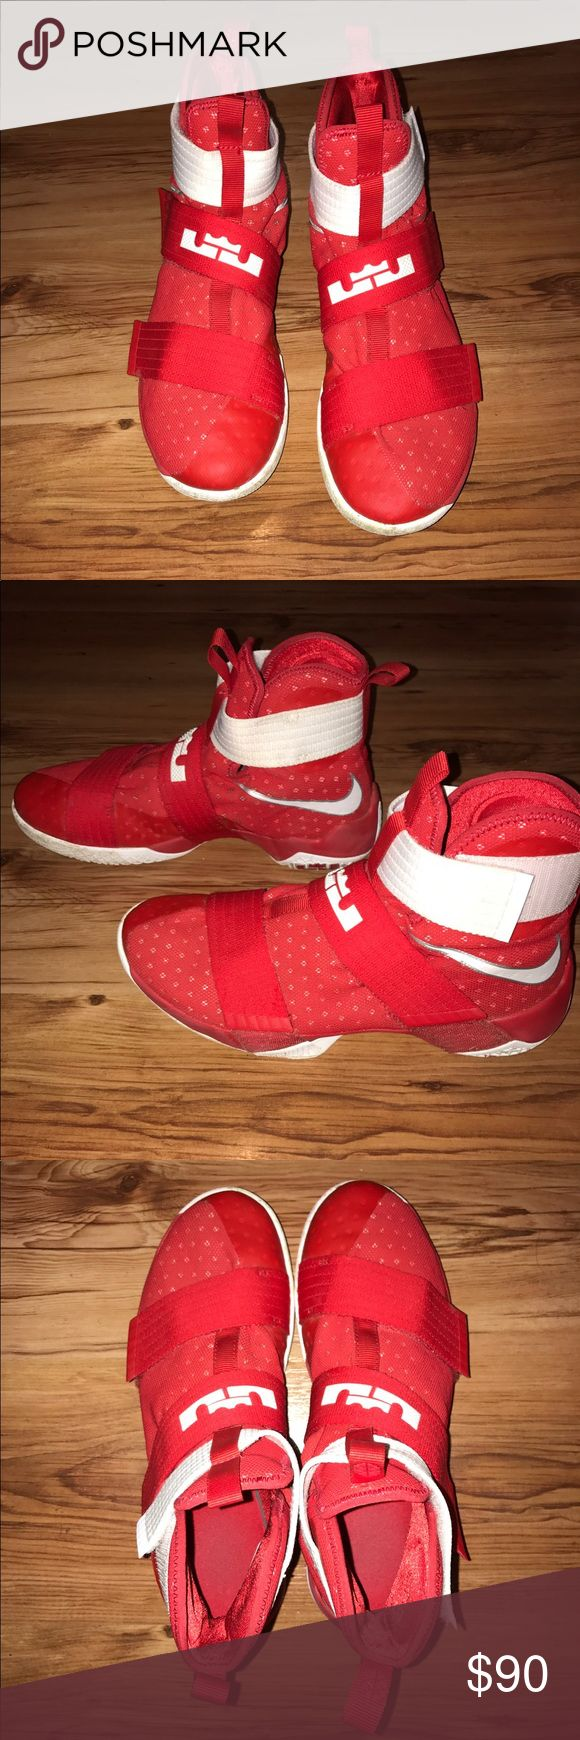 Nike Lebron Soldier 10 Very good condition! Only been worn twice Nike Shoes Athletic Shoes